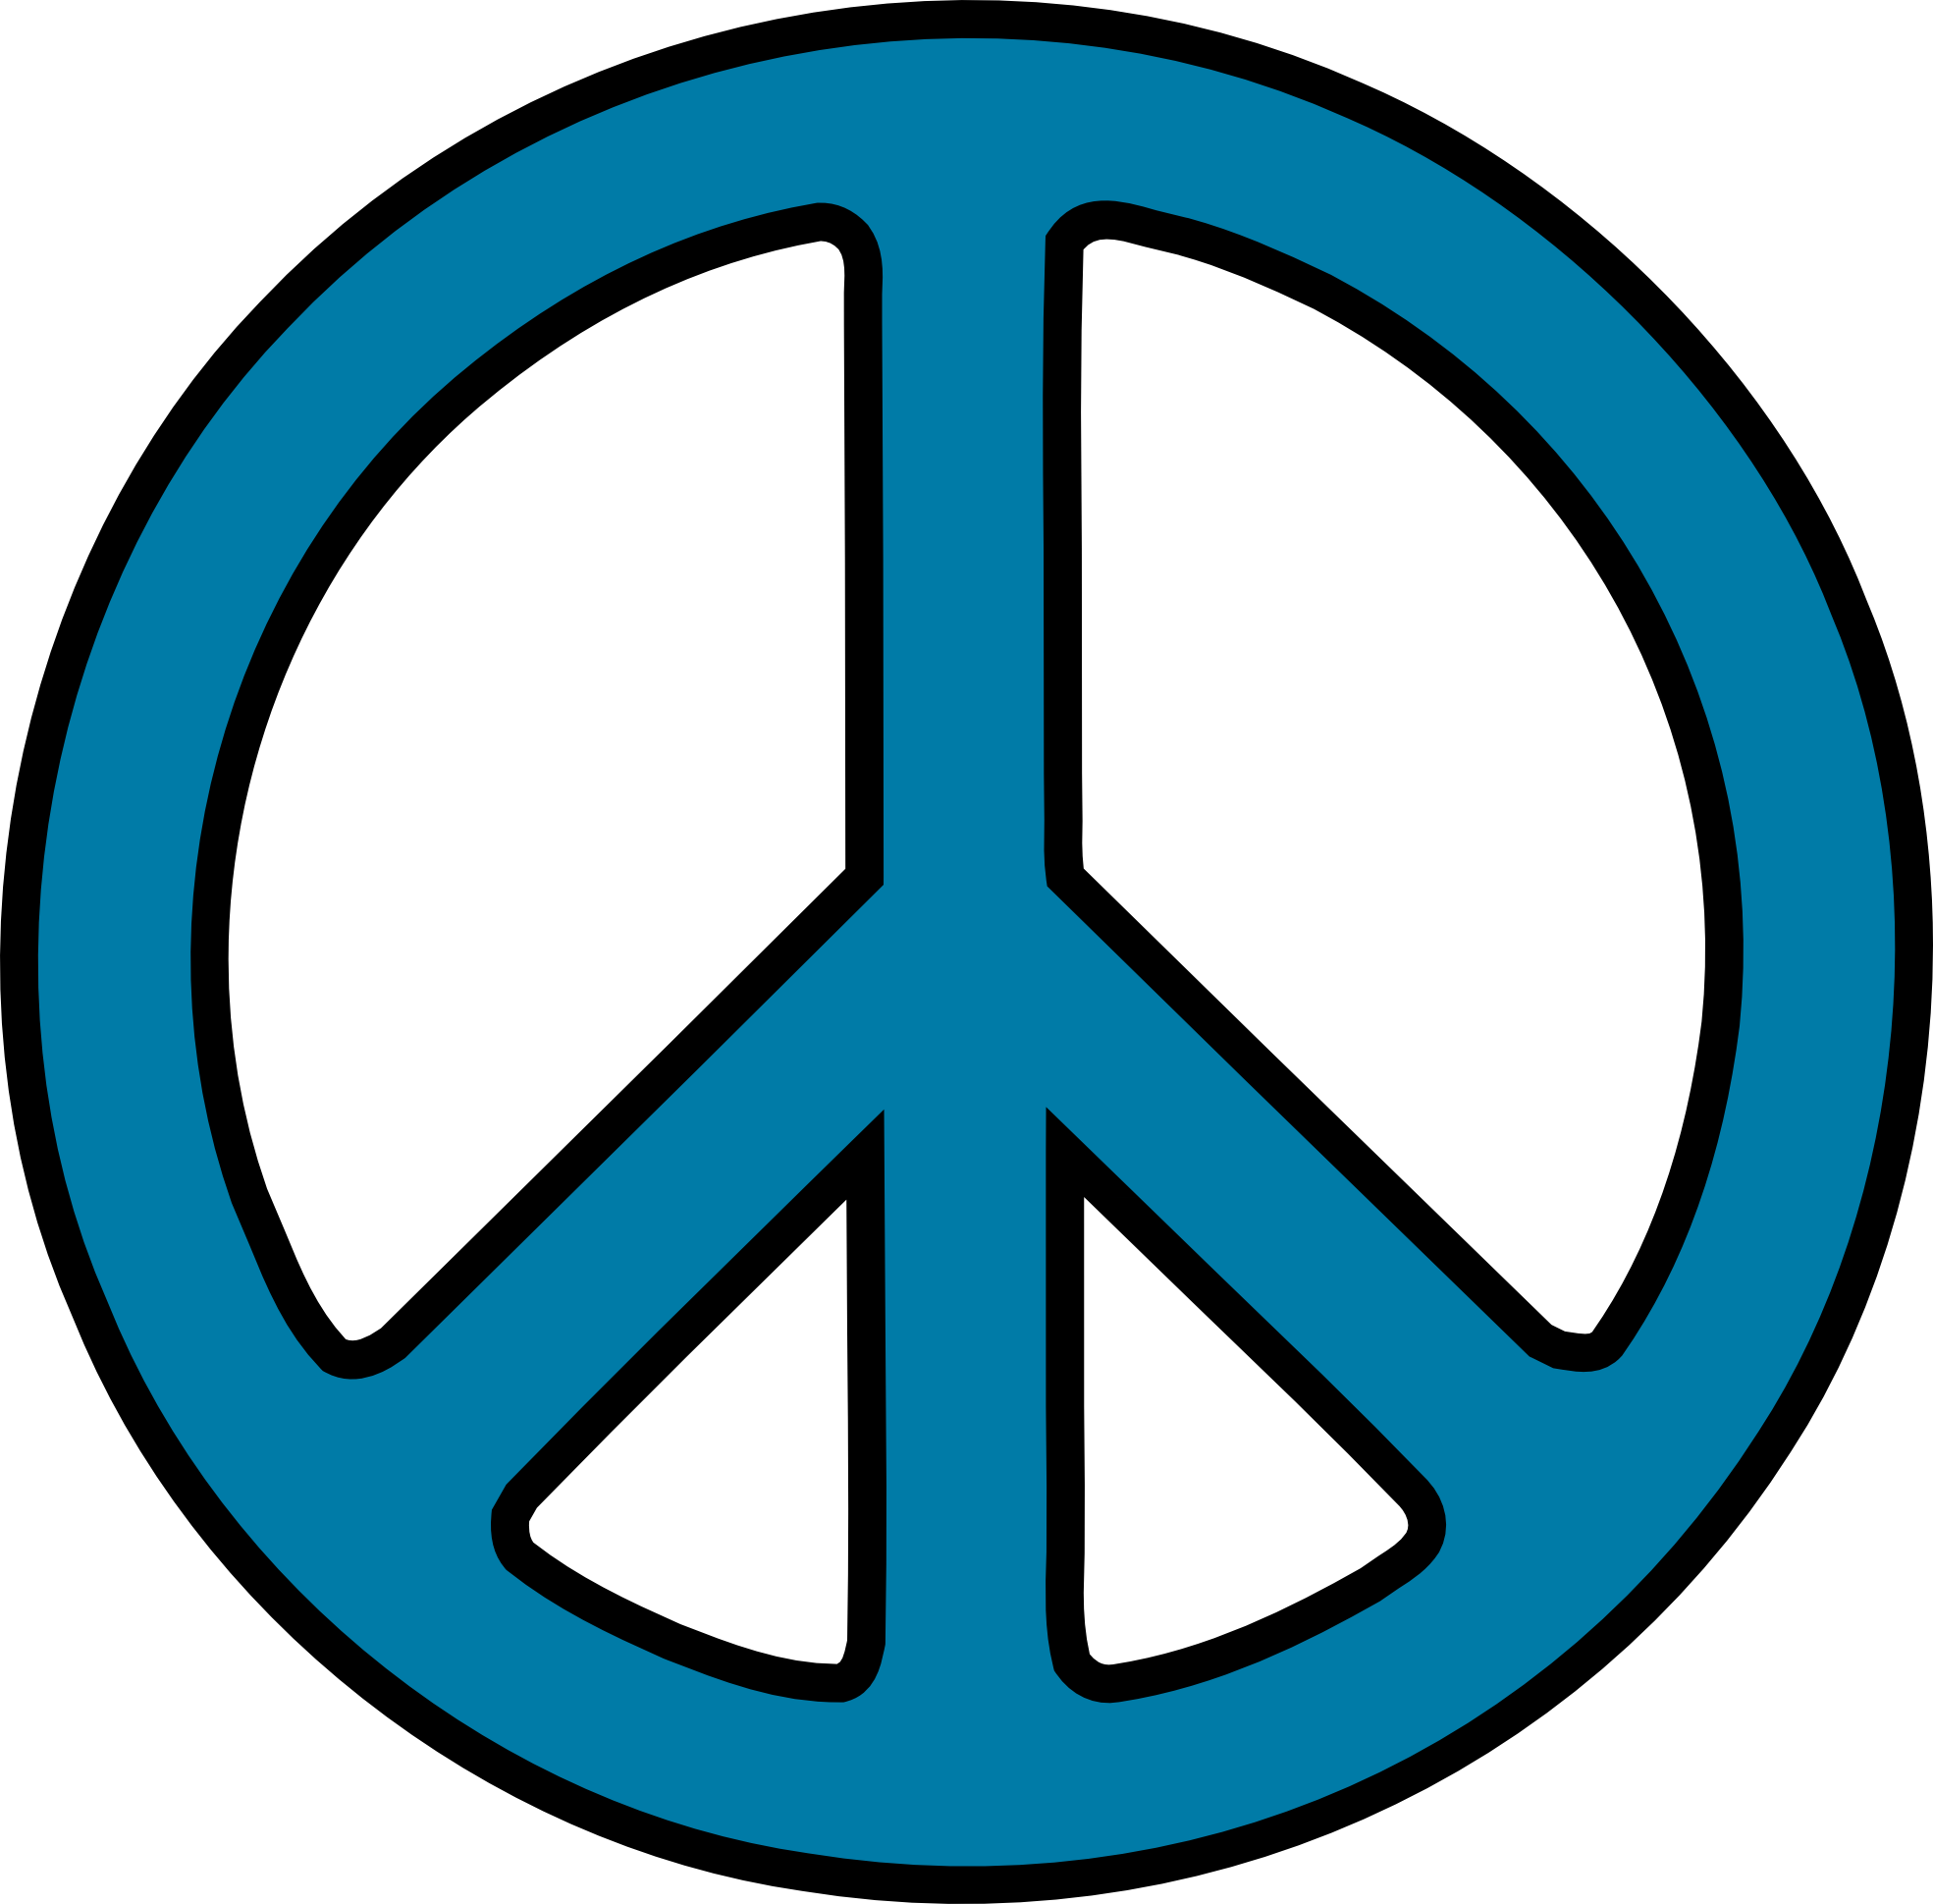 Clipart pencil sign. Peace and in color